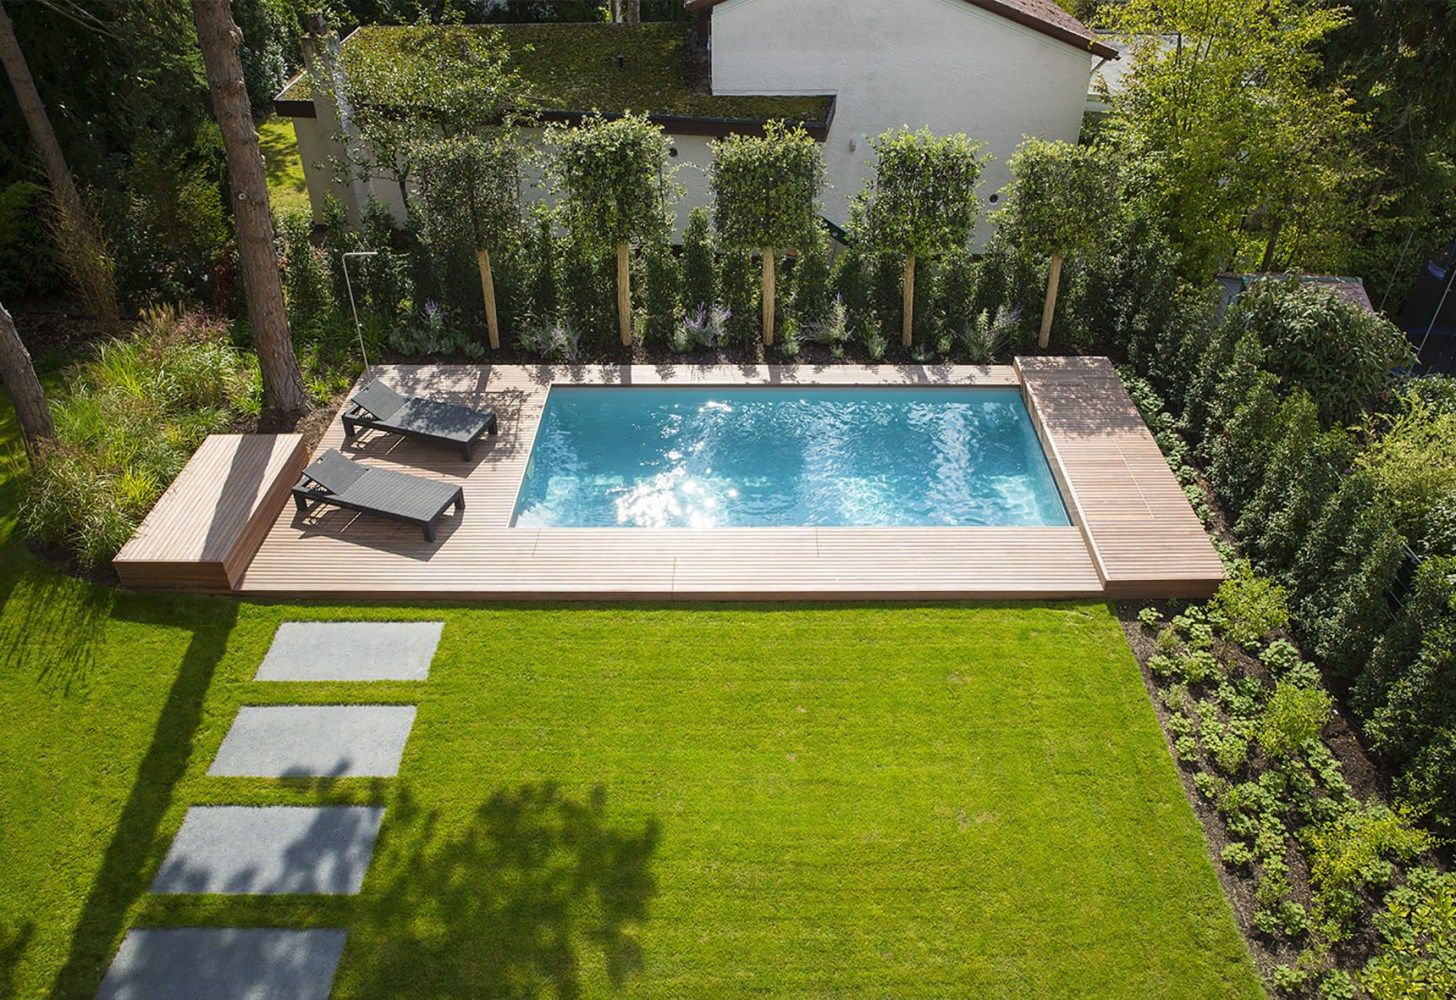 pool in kleinem garten garten pool f r kleinen garten kleine g rten und pool im garten. Black Bedroom Furniture Sets. Home Design Ideas